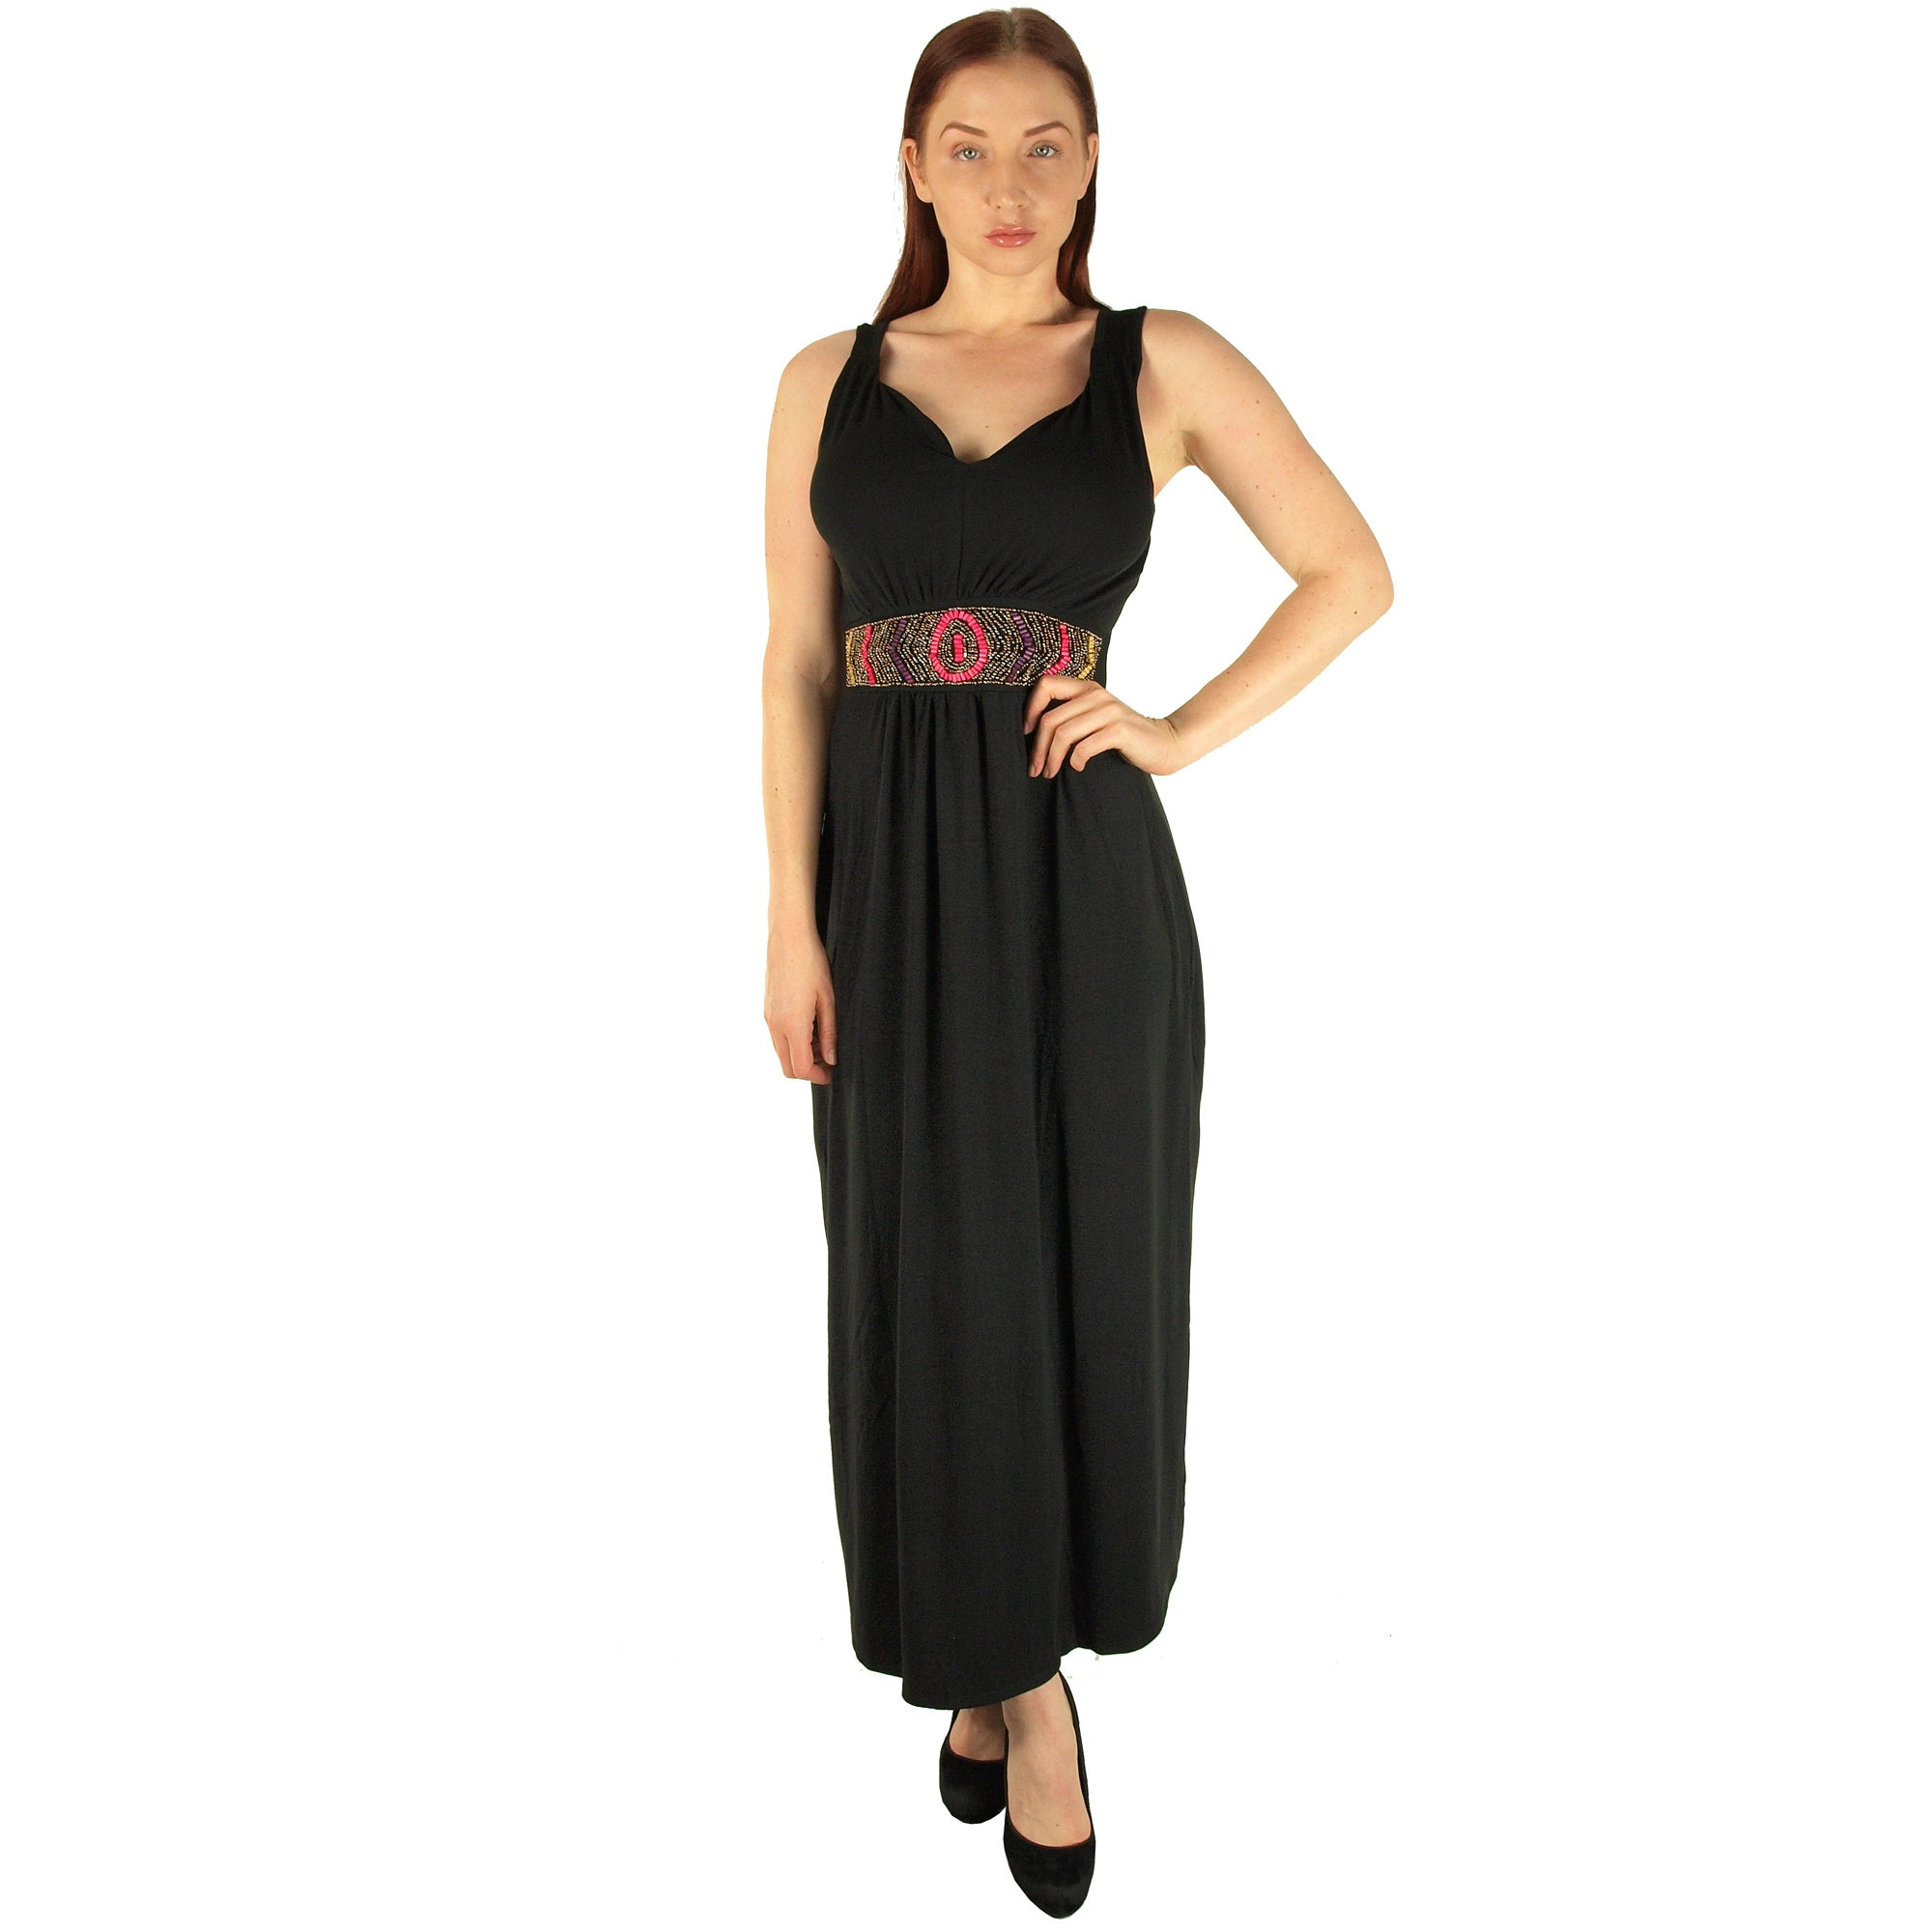 69f308cf41 Special One Women s Black Polyester Super Plus Size Beaded Waist Maxi Dress